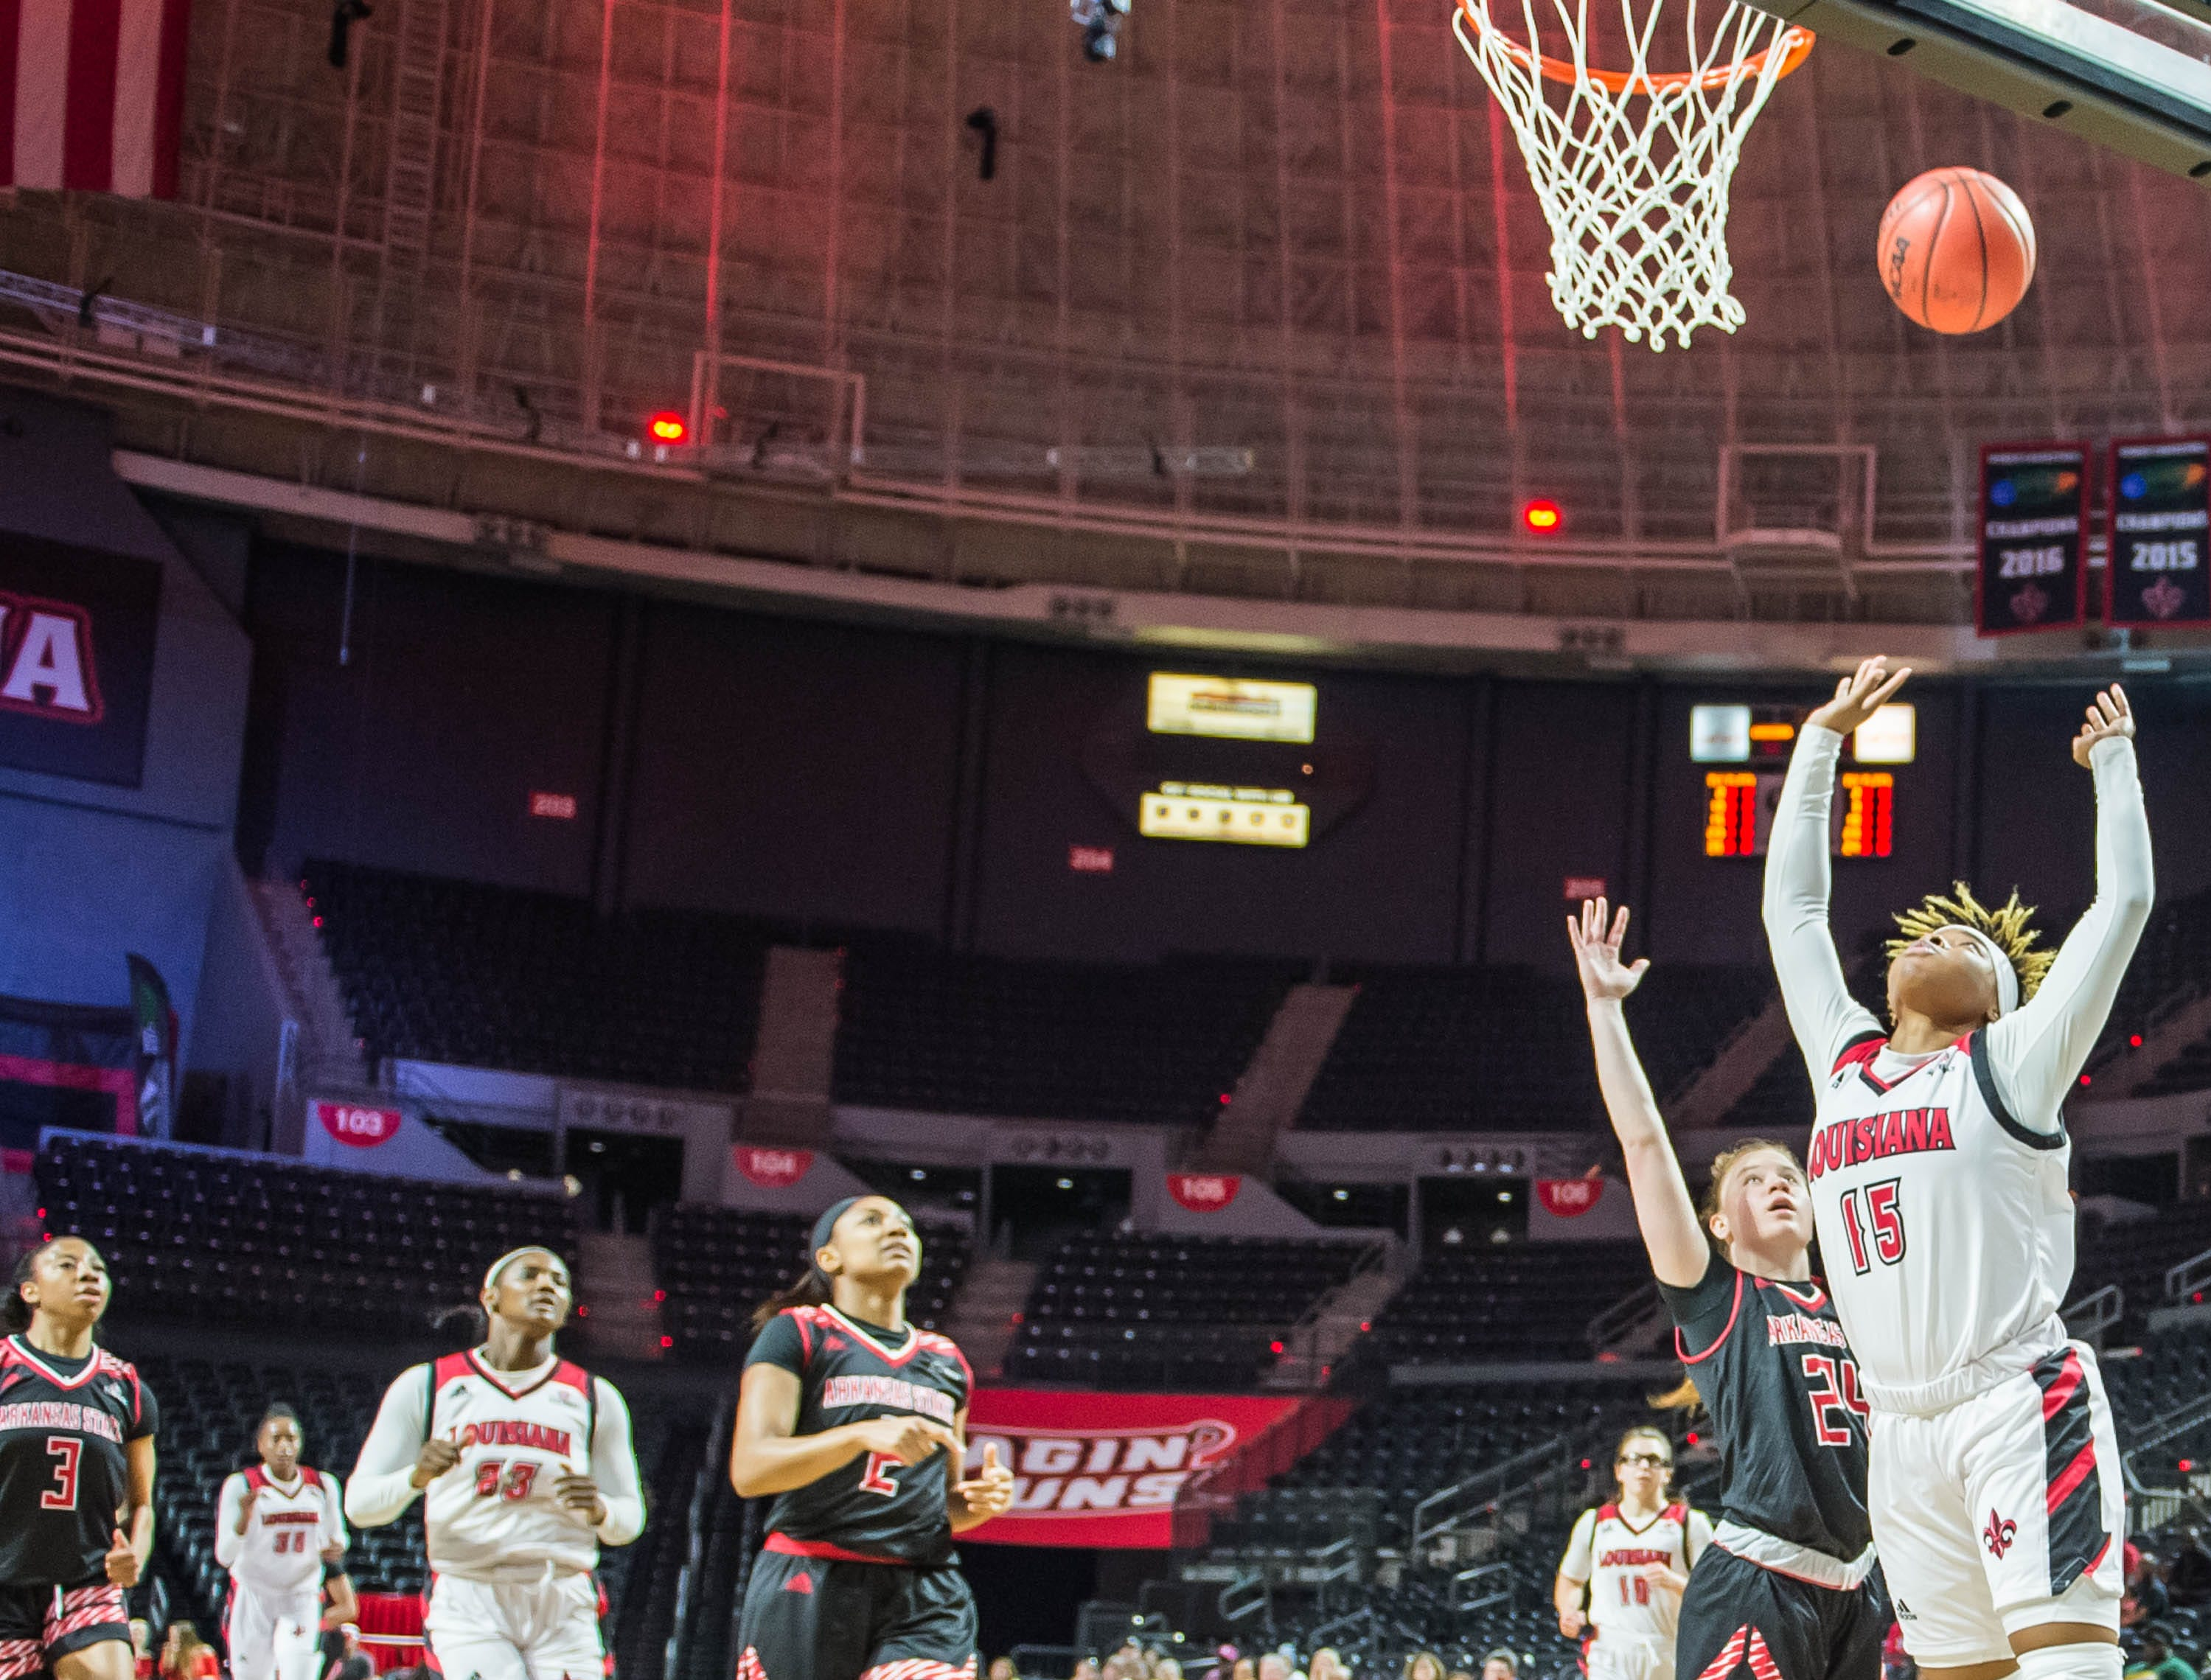 Cajuns guard Diamond Morrison (15) with the layup as the Cajuns women's basketball team plays the Arkansas State Red Wolves at the Cajundome on Saturday, March 9, 2019.